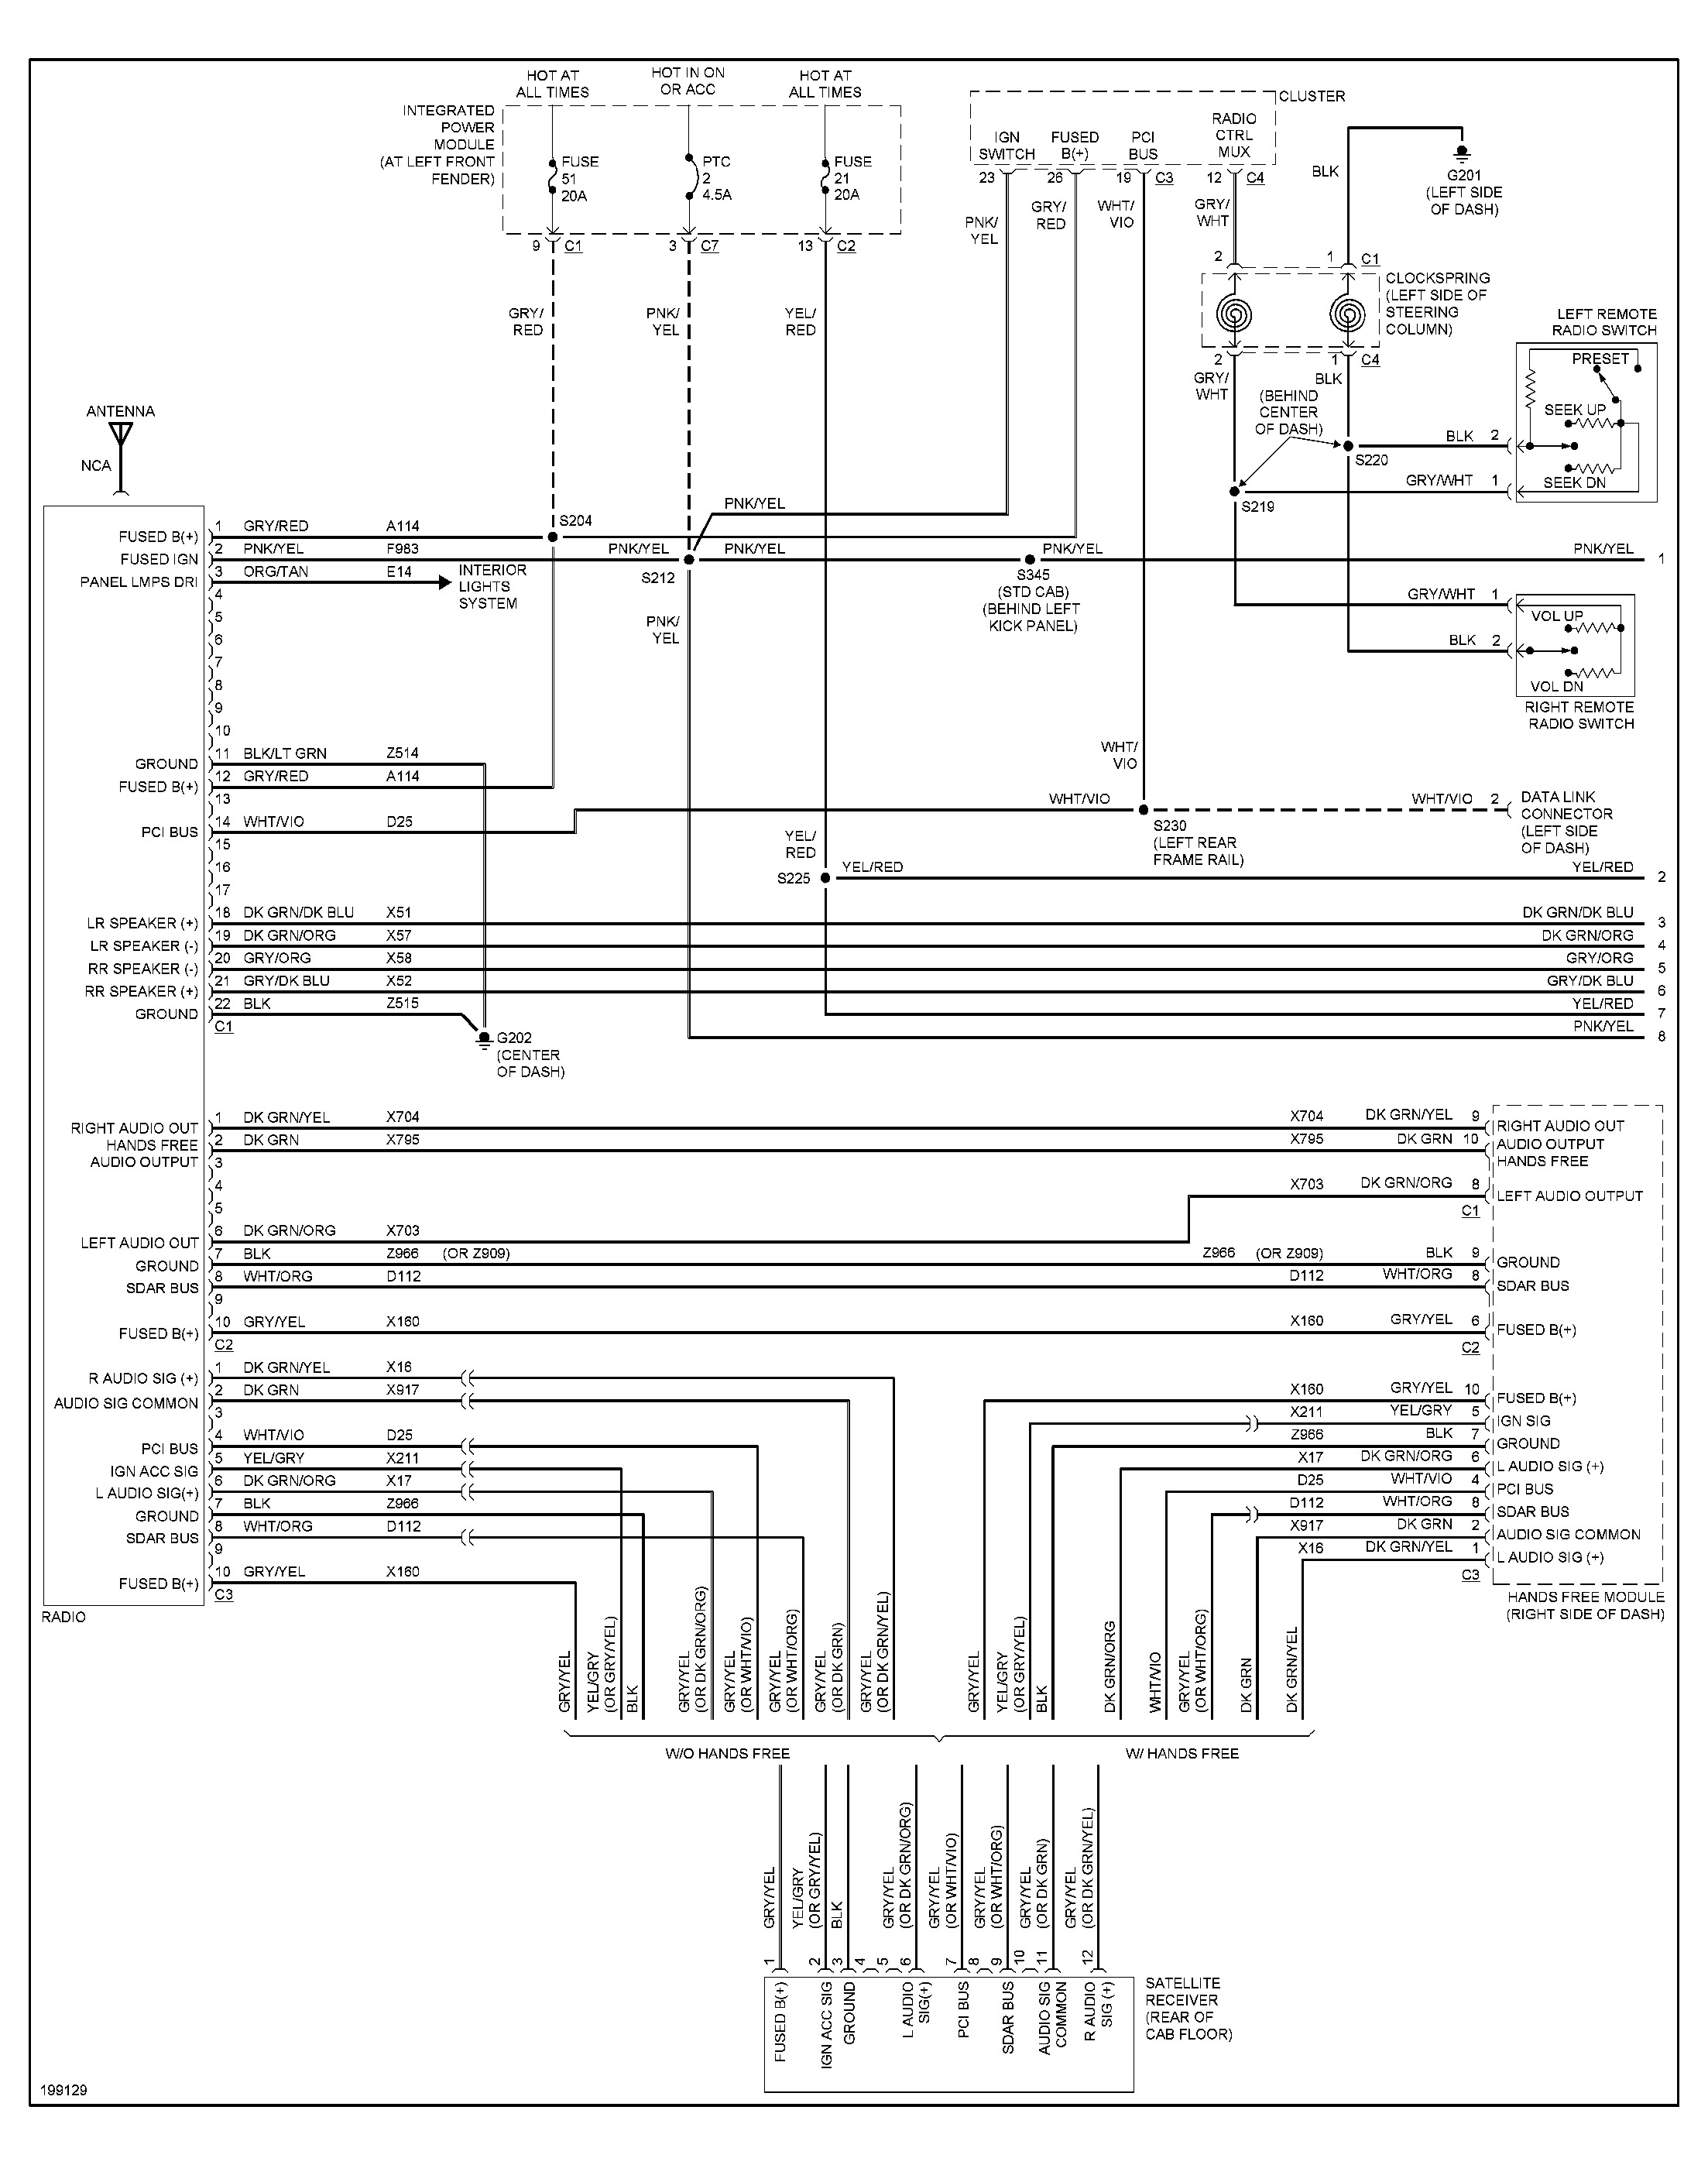 [DIAGRAM] 1999 Dodge Truck Radio Wiring Diagram FULL